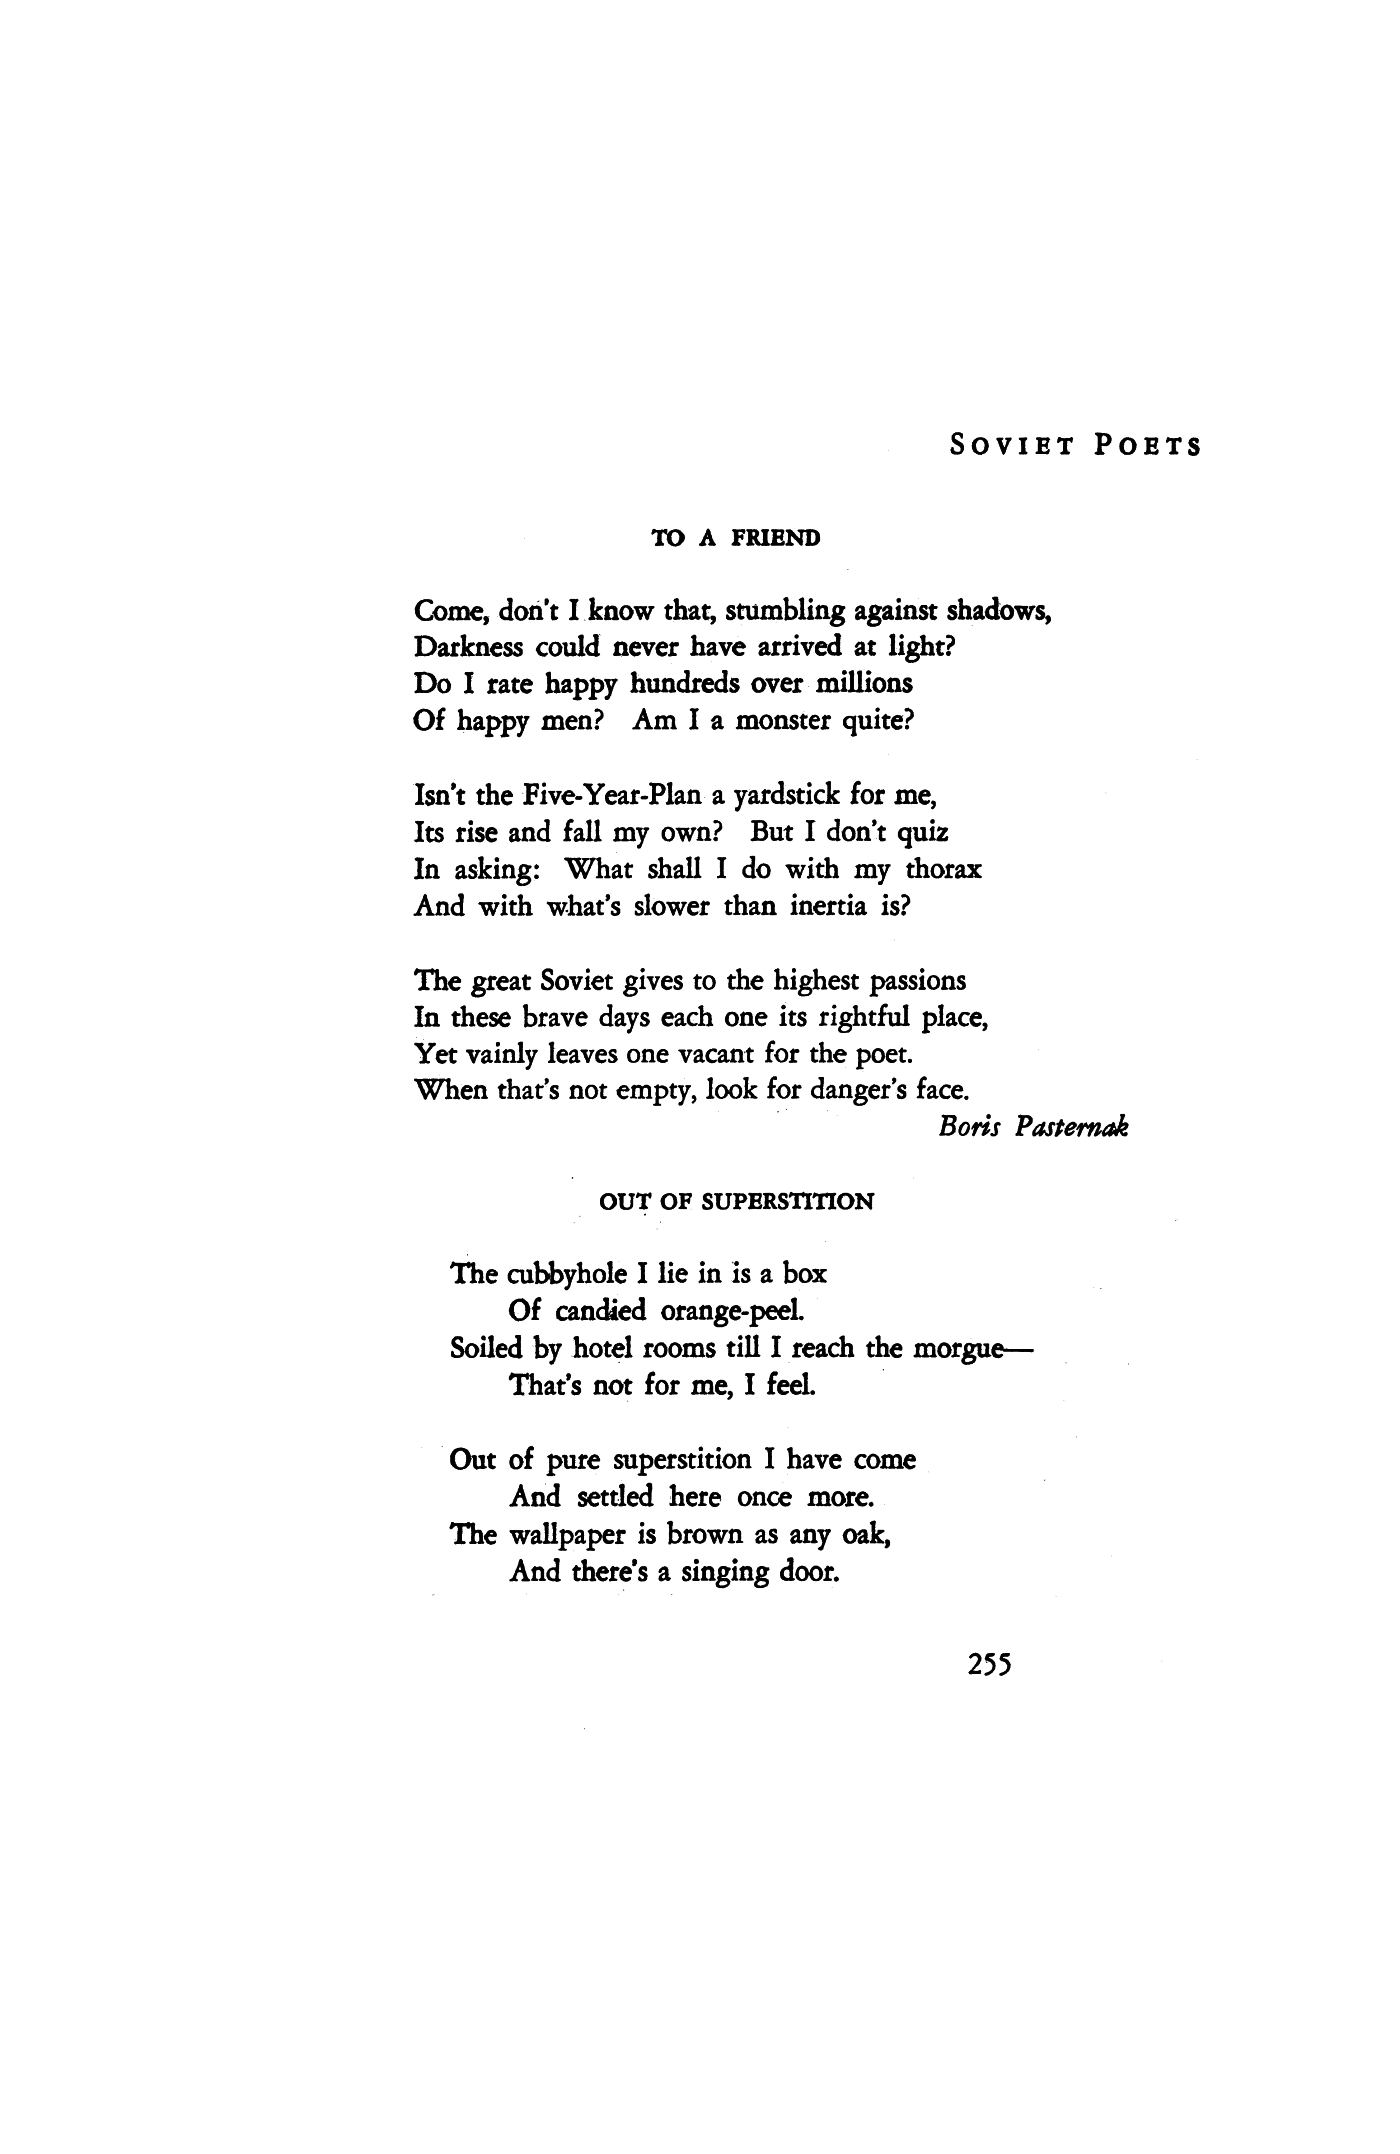 Poem by Boris Pasternak 88